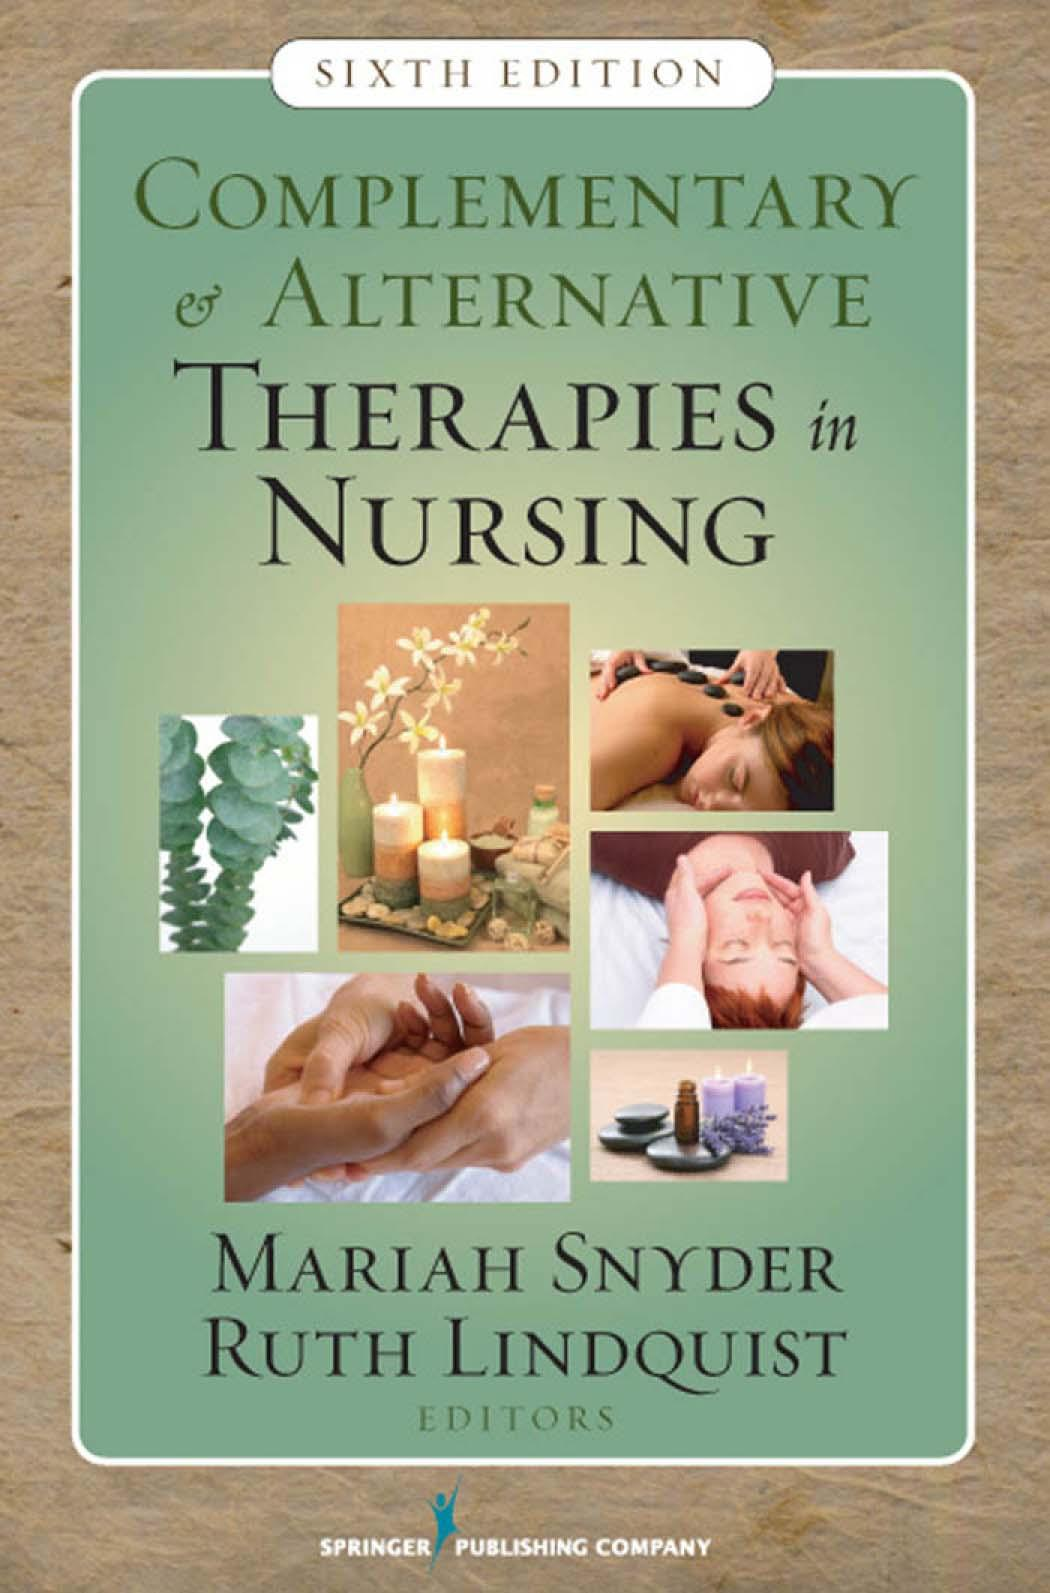 Complementary & Alternative Therapies in Nursing: Sixth Edition EB9780826124296